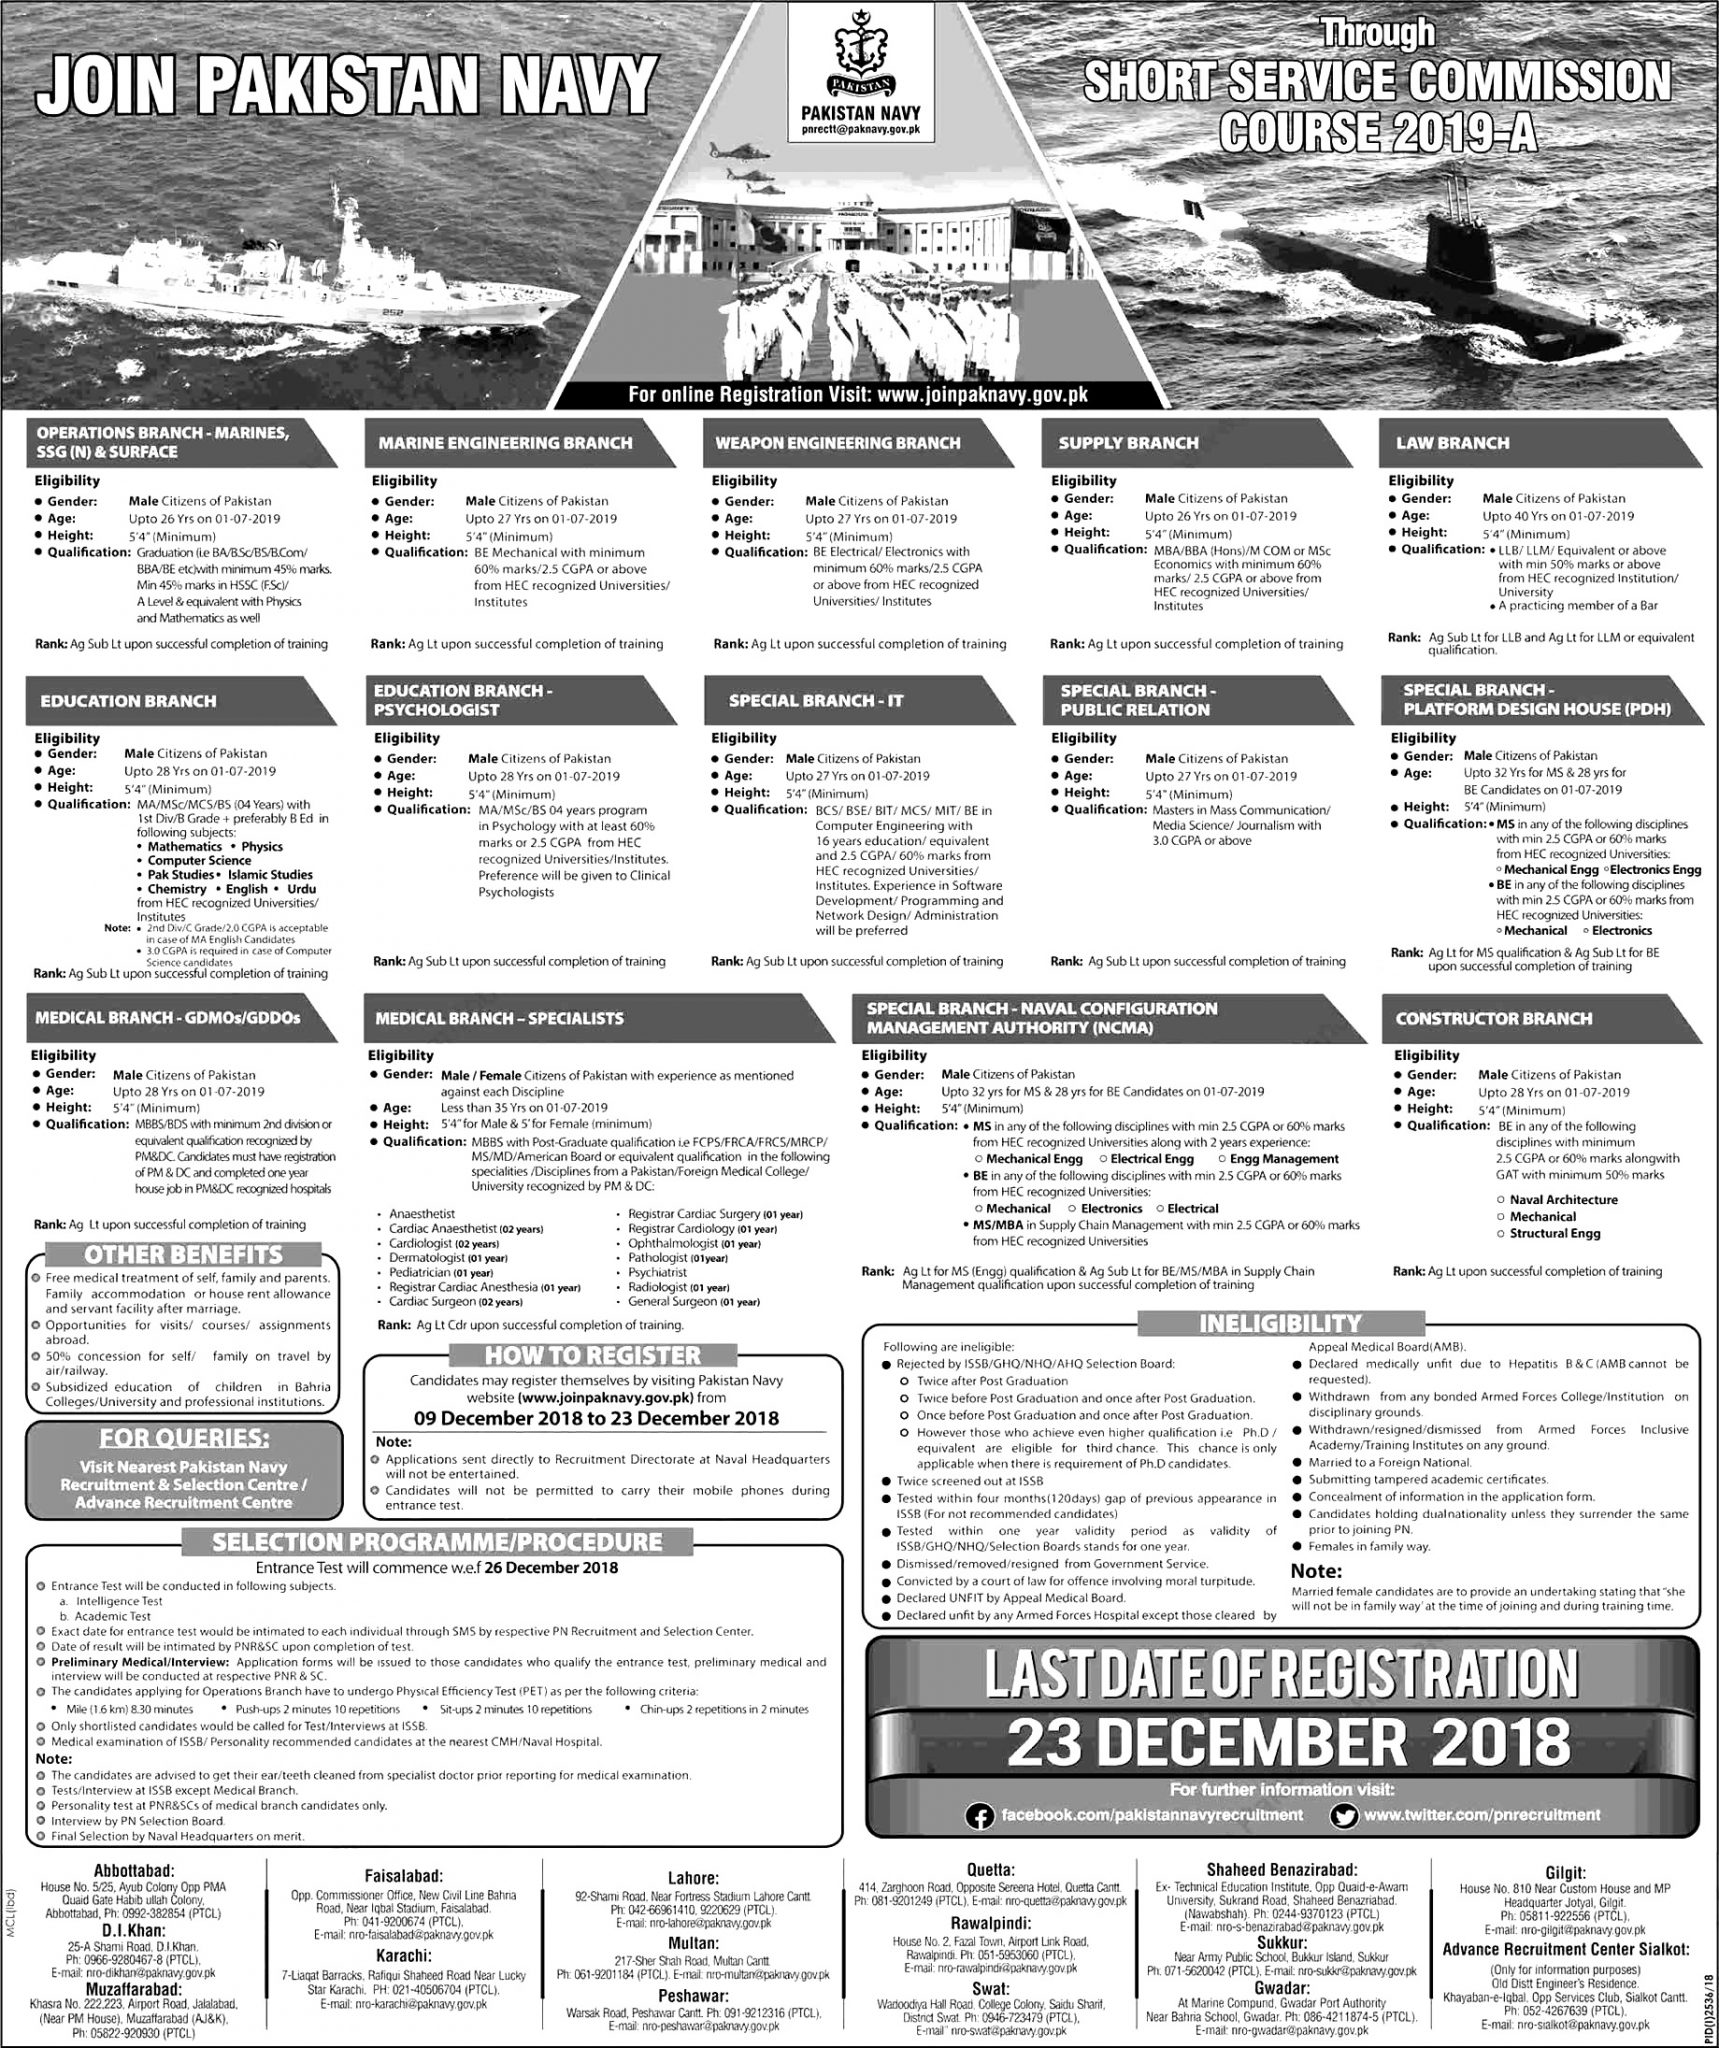 Join Pakistan Navy through Short Service Commission Course 2021-A Eligibility Criteria Online Registration Schedule